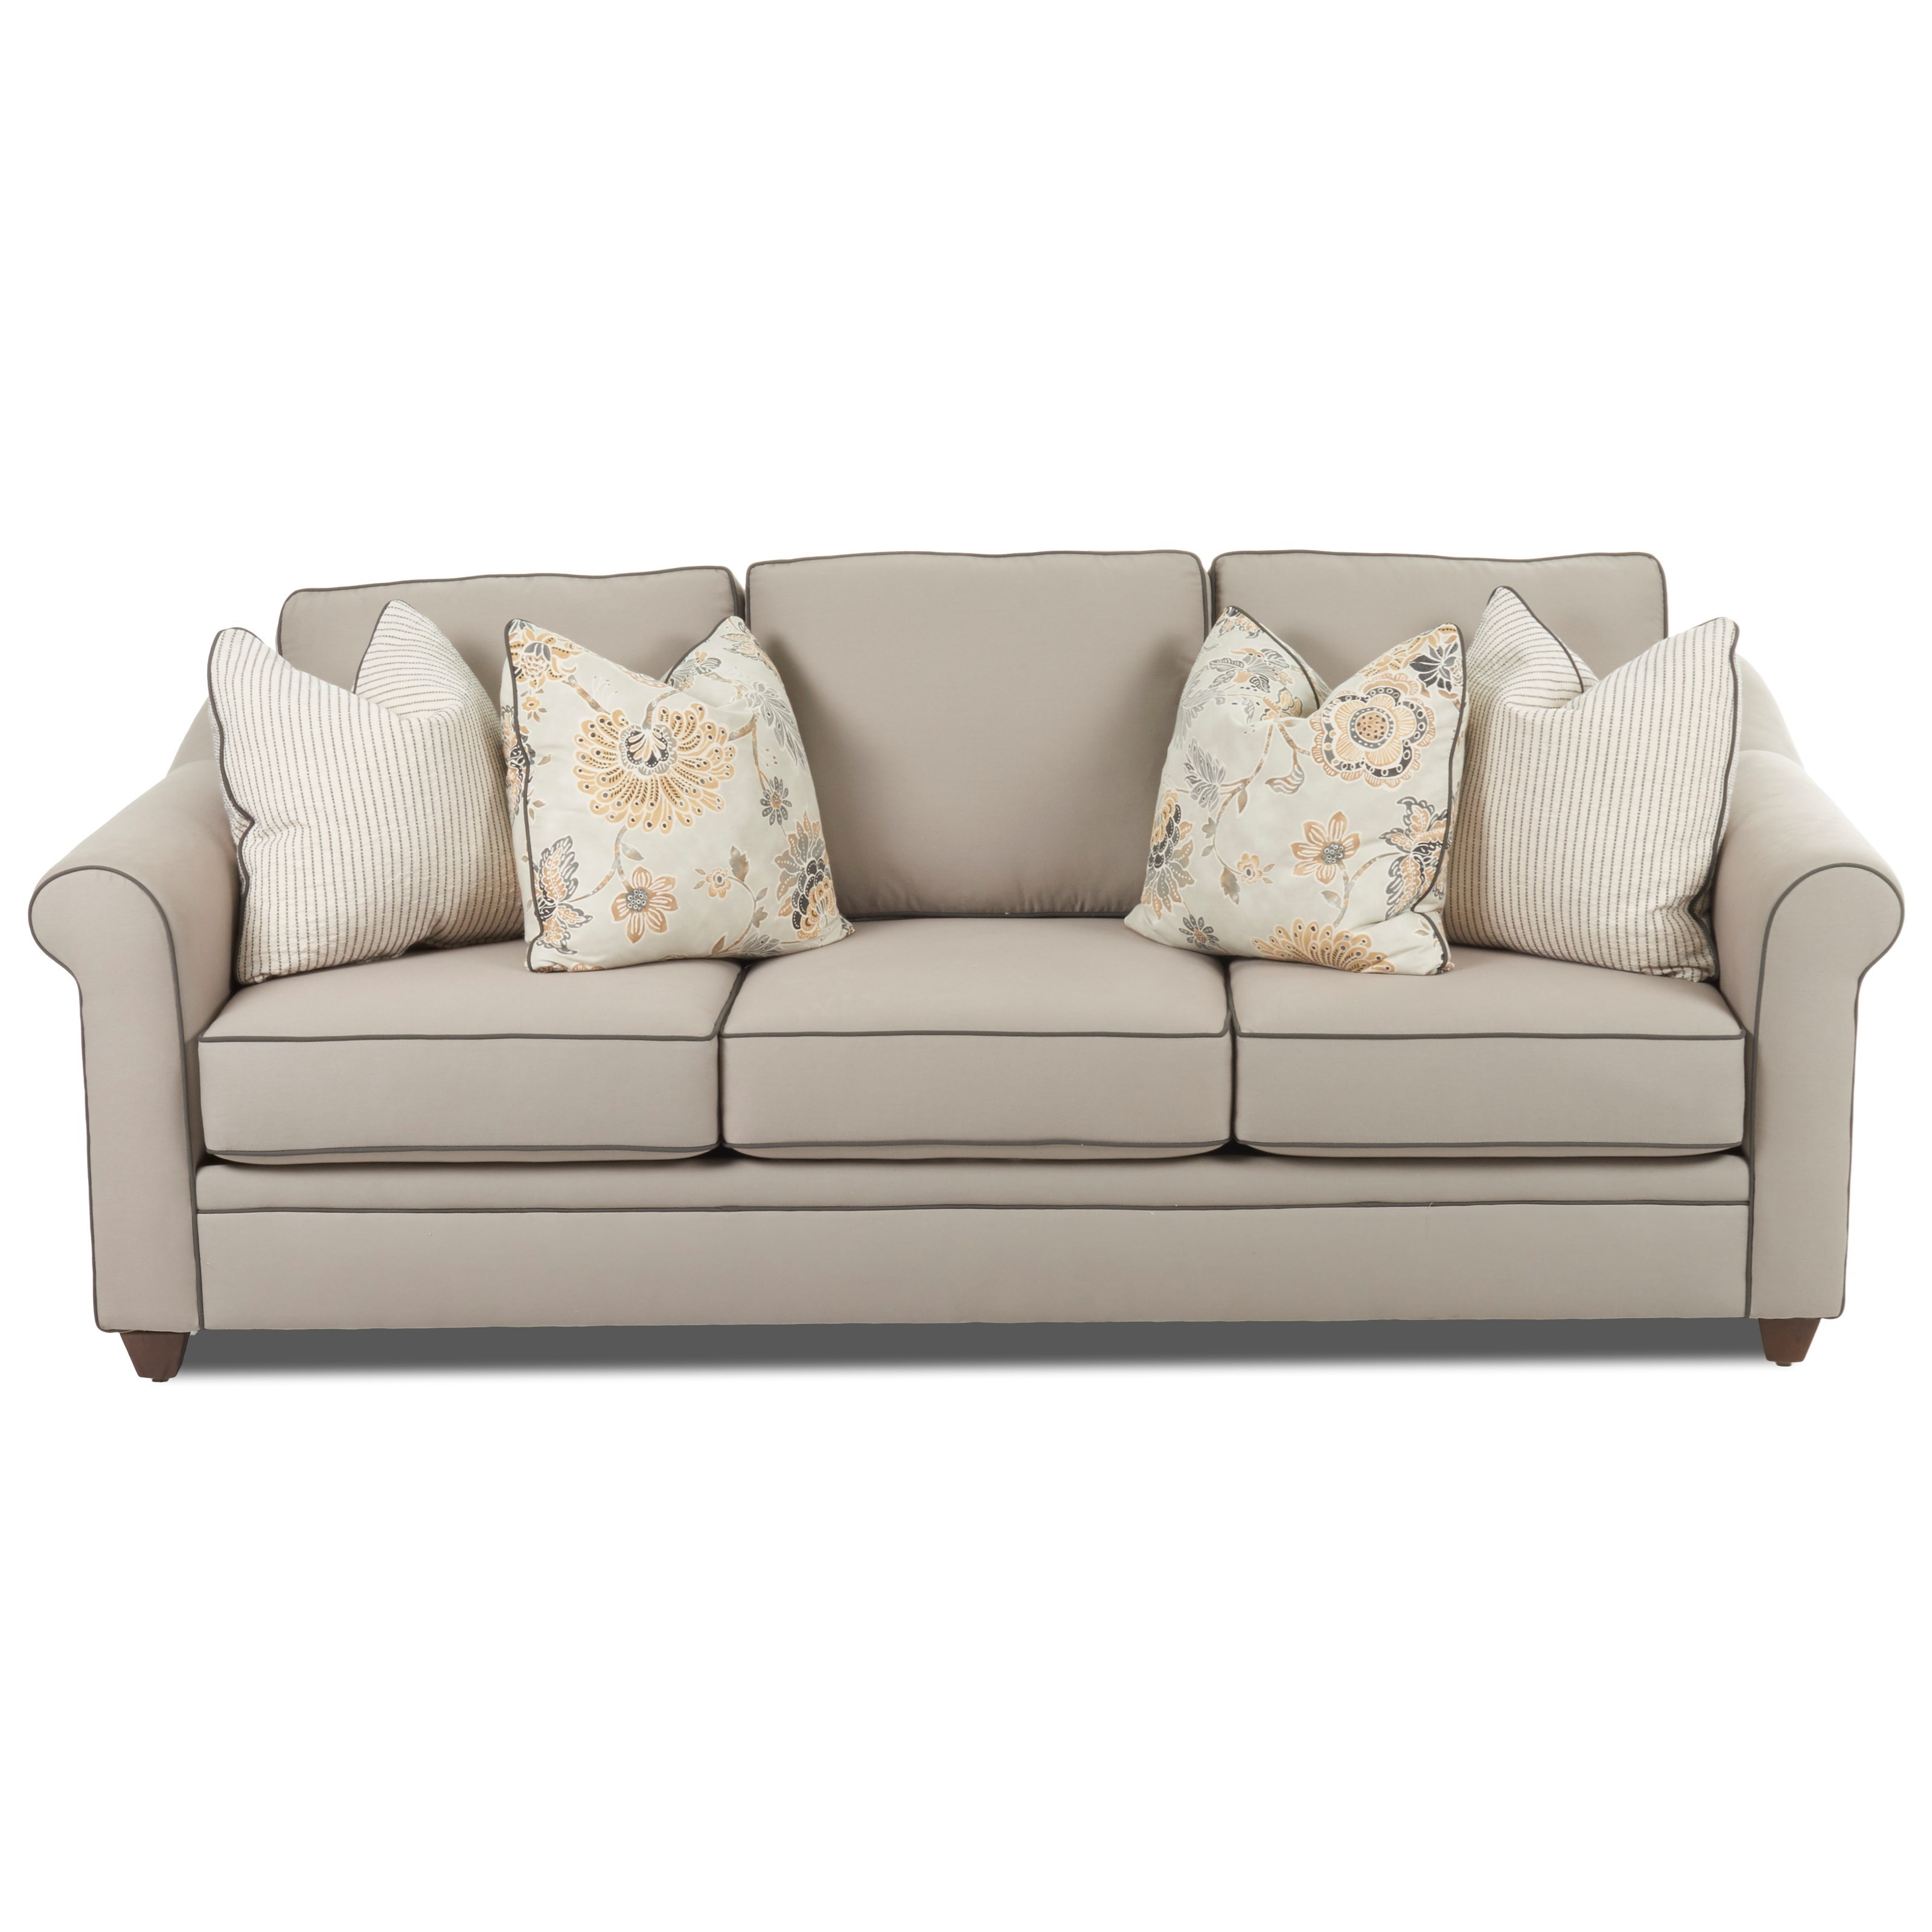 Klaussner Sandy Ridge Transitional Sofa With Rolled Arms Johnny Janosik Sofas